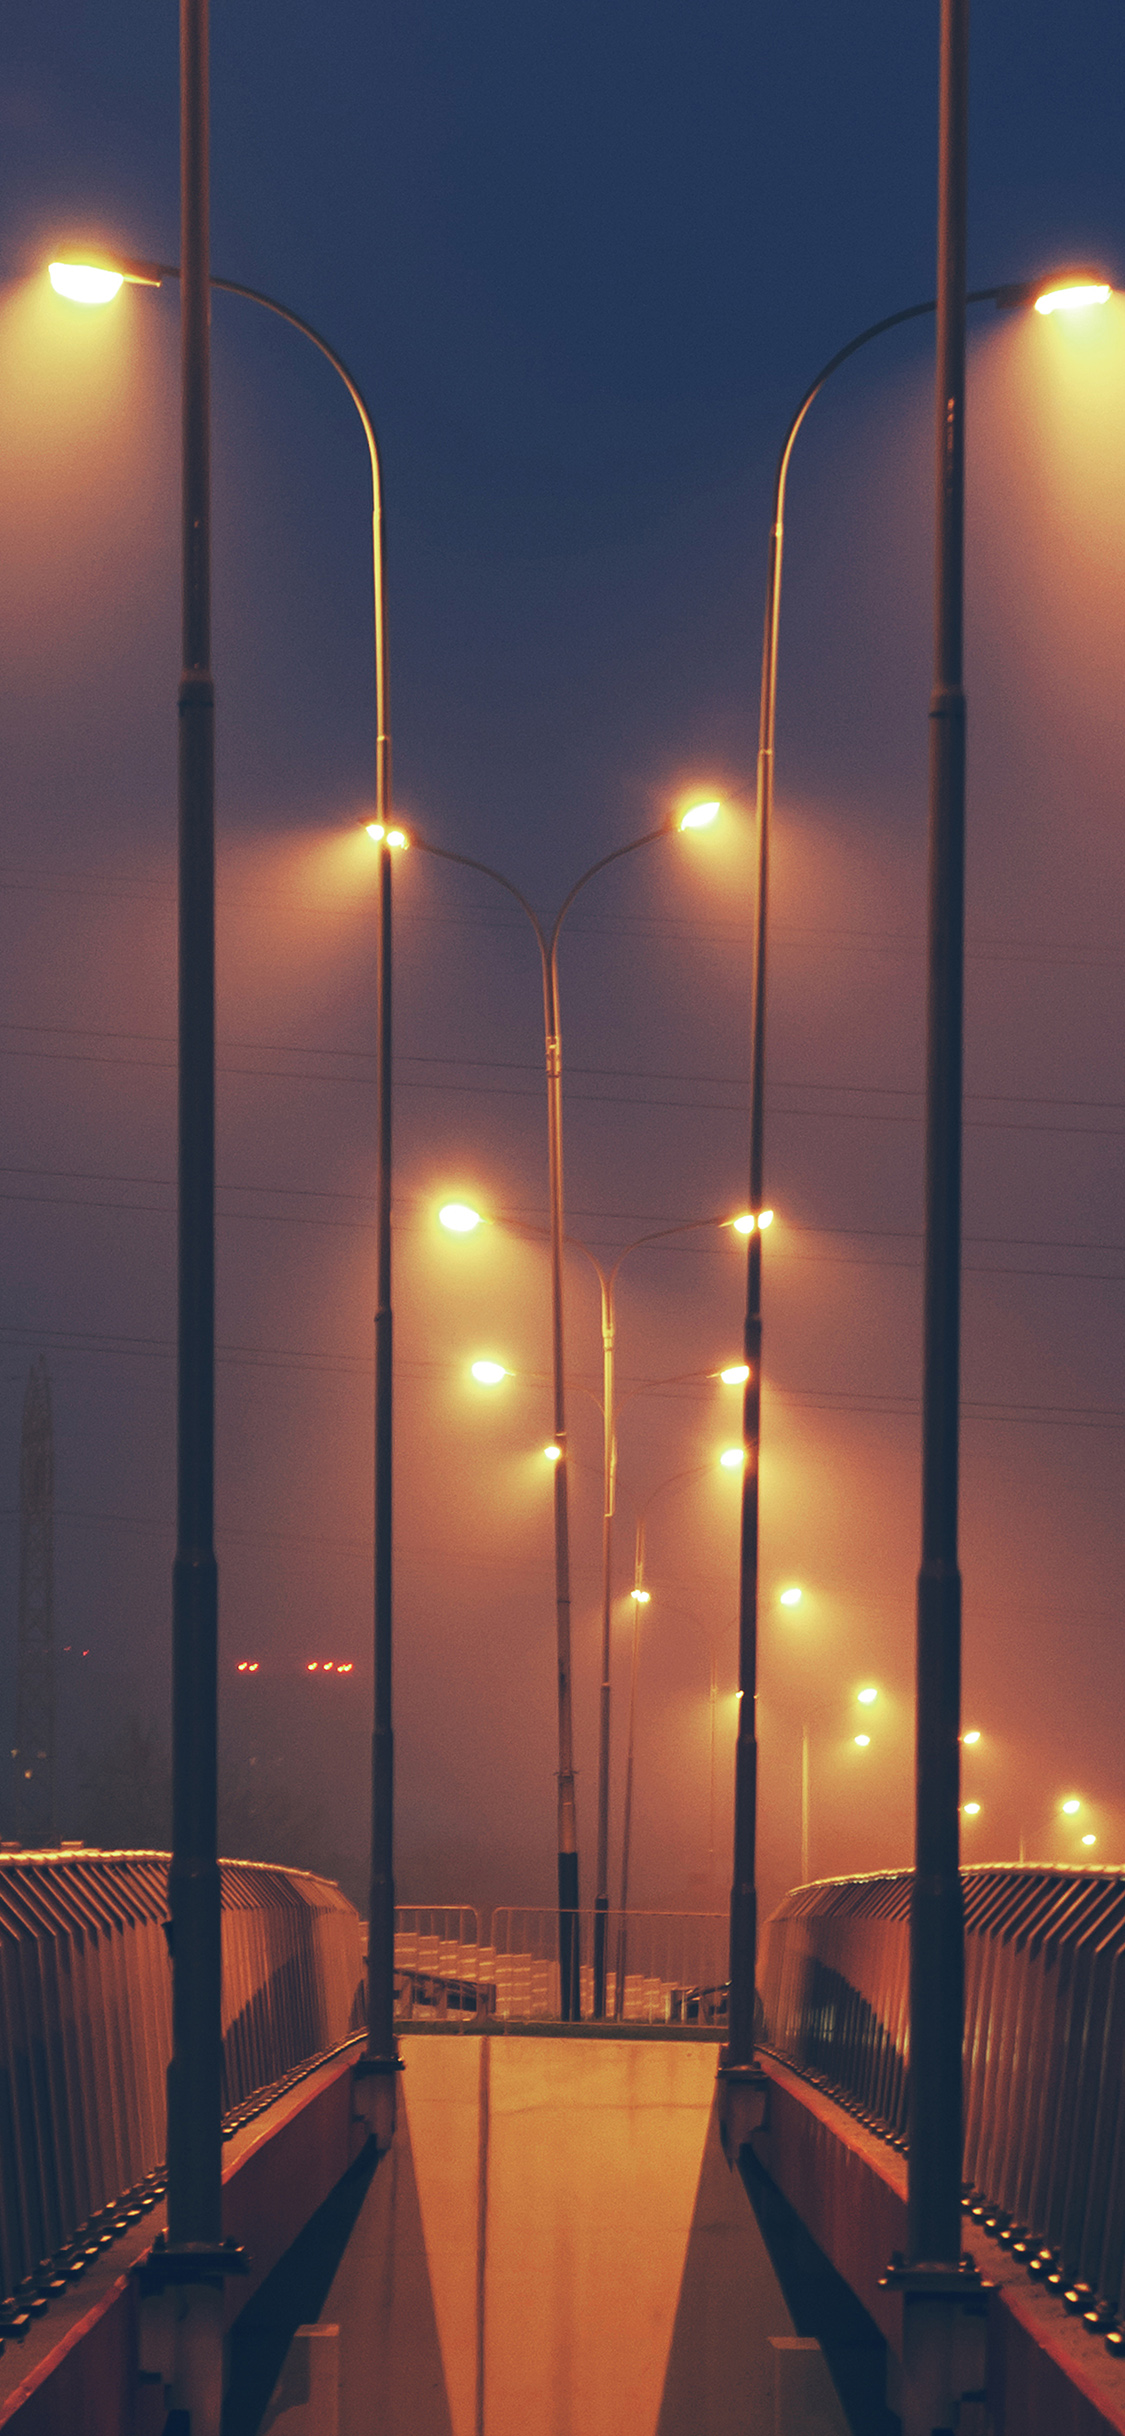 Iphonepapers Com Iphone Wallpaper Mv05 Night Bridge City View